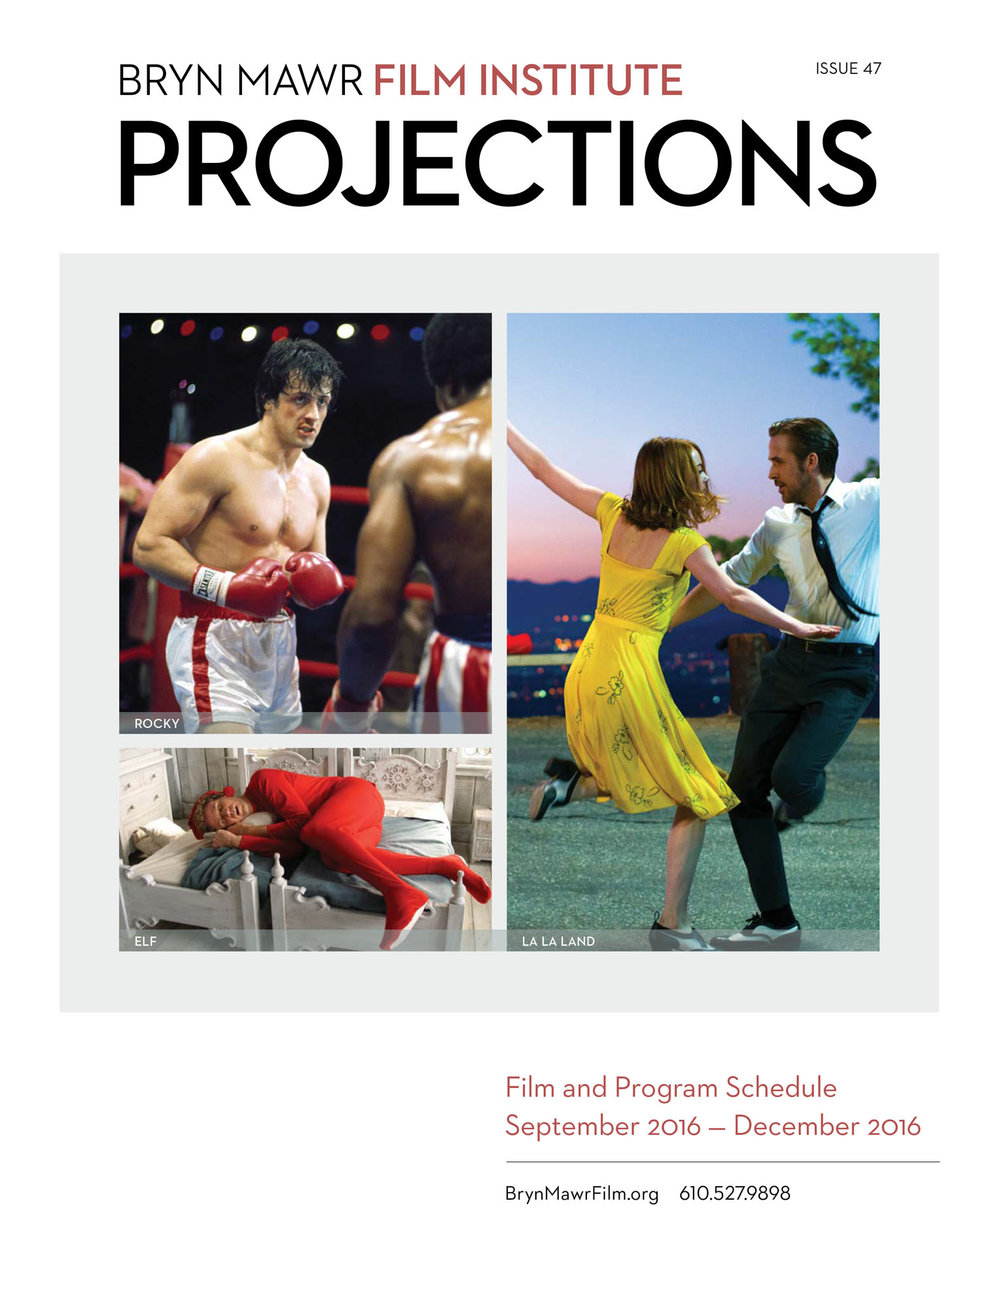 BMFIProjections47_FinalCover.jpg